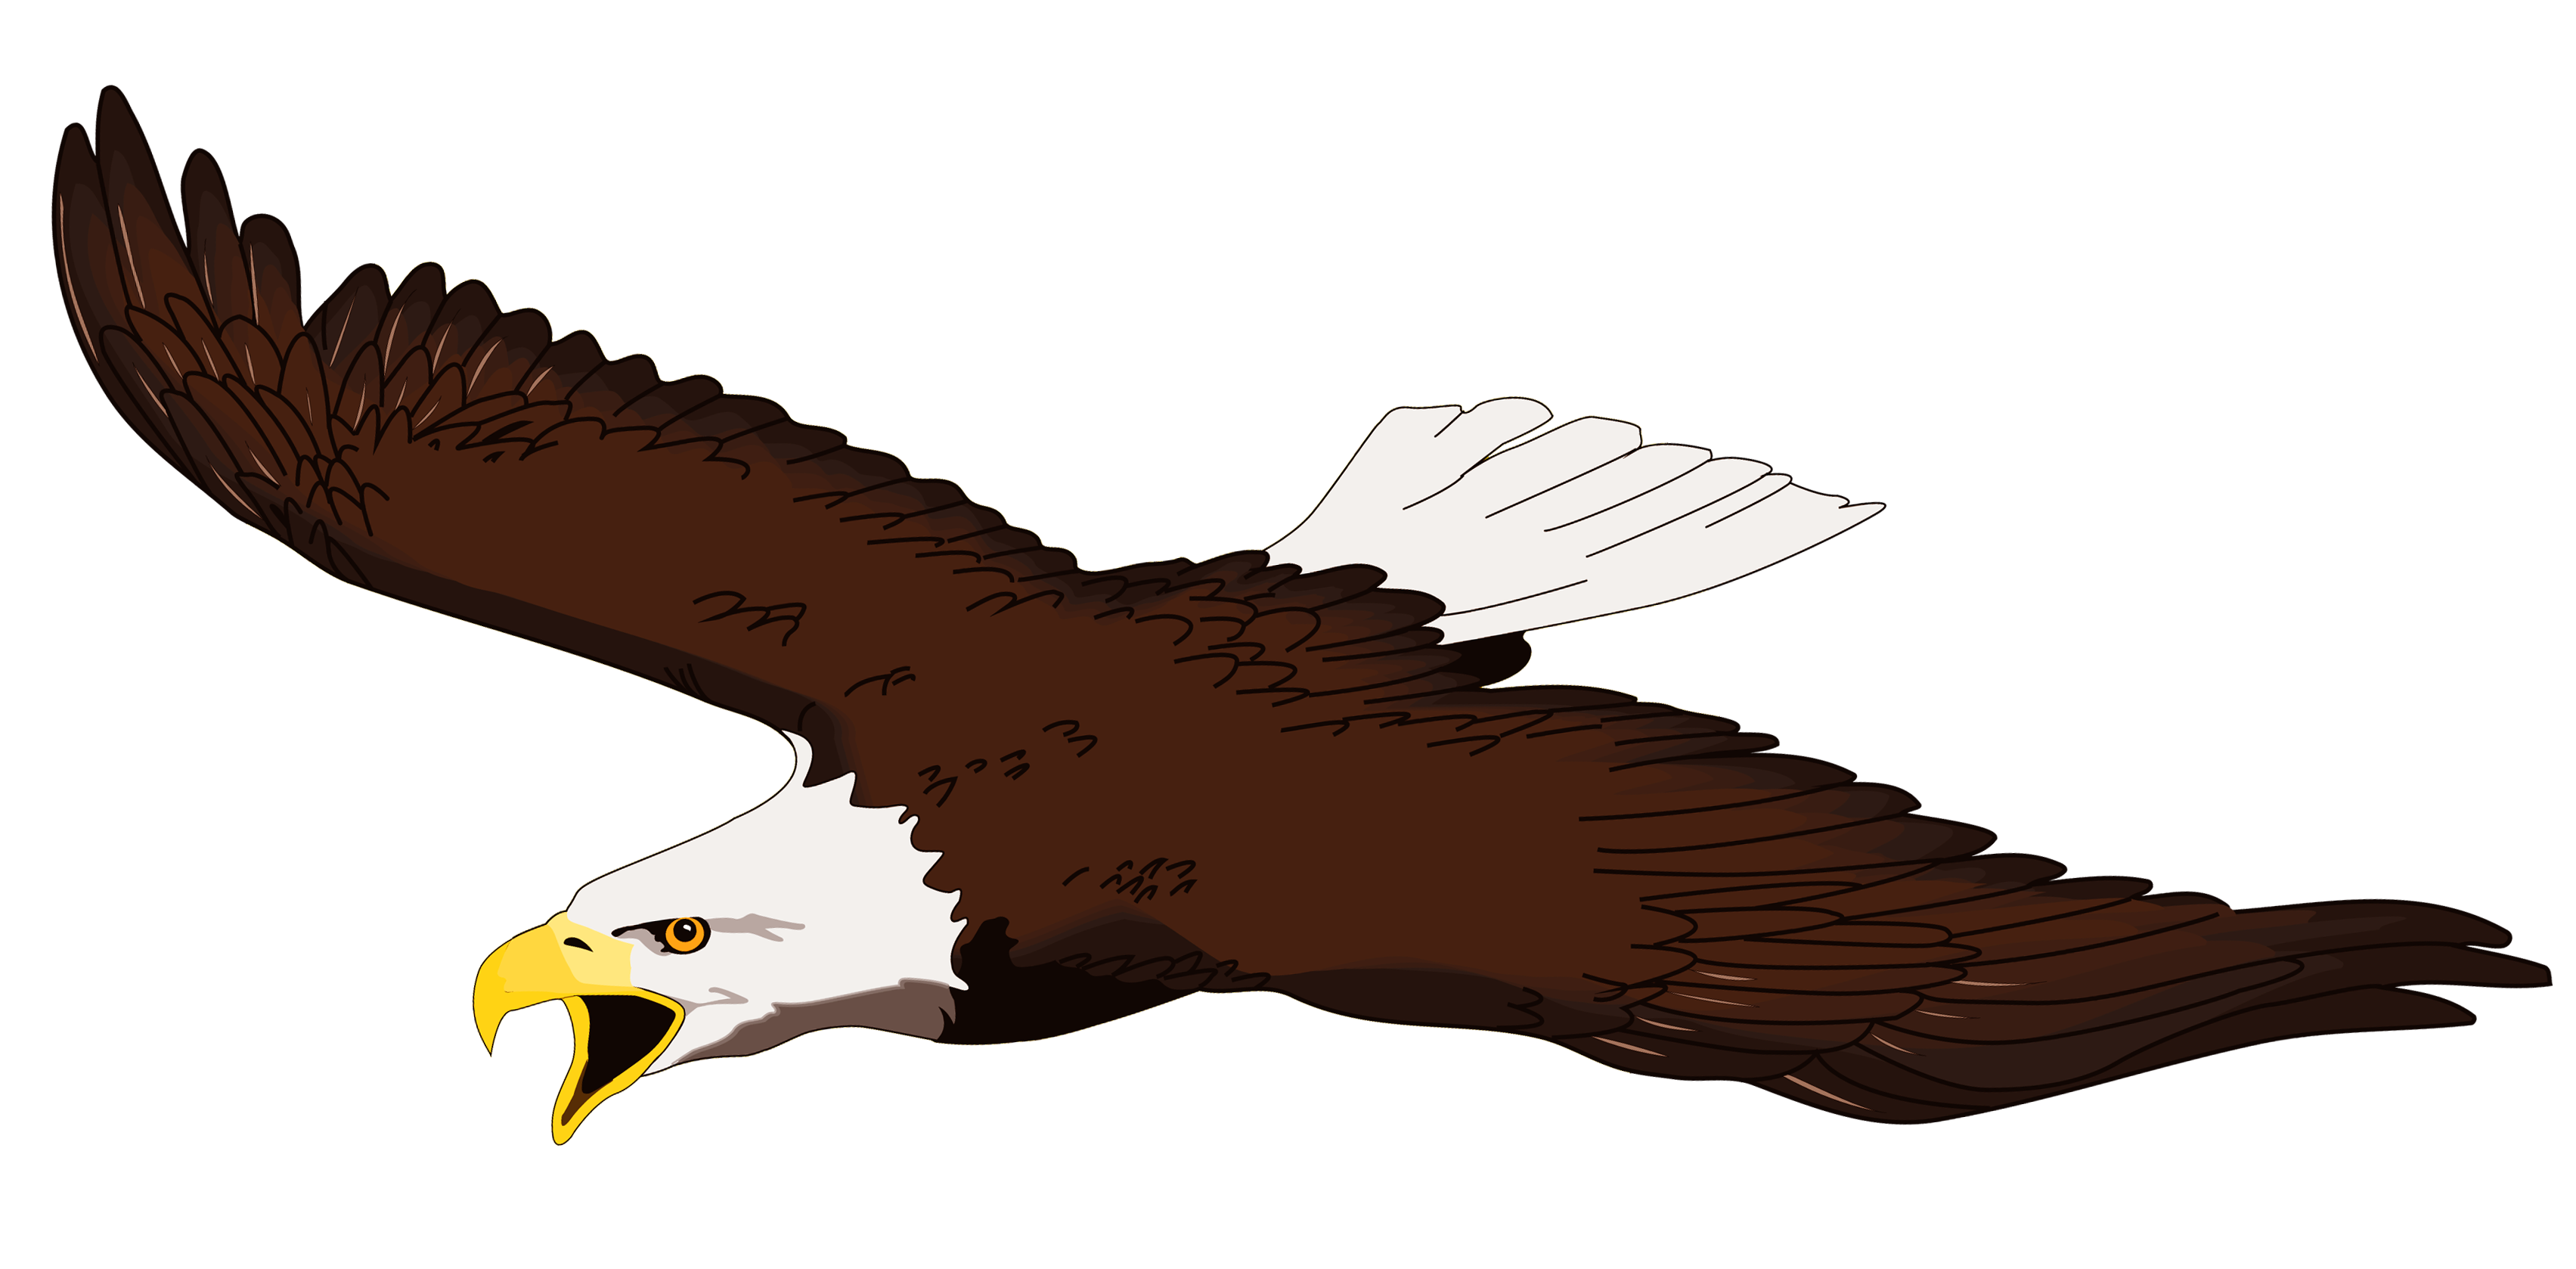 Soaring eagle clipart image black and white stock Free Eagle Cliparts, Download Free Clip Art, Free Clip Art on ... image black and white stock